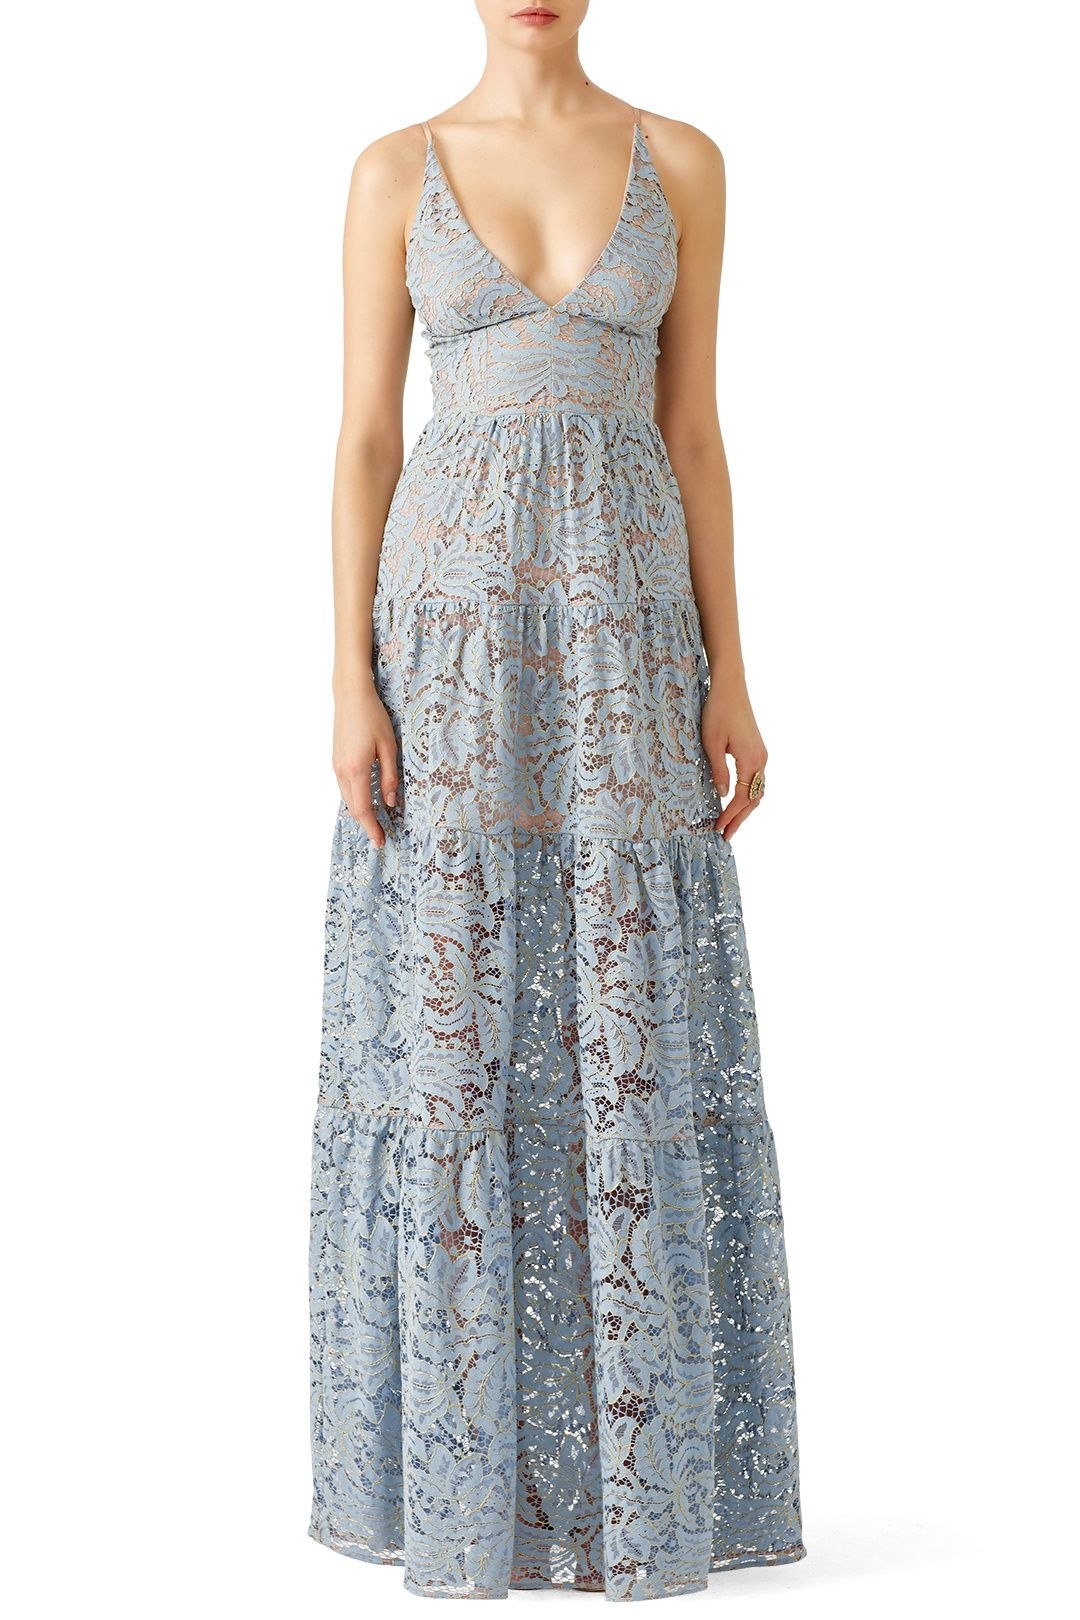 Rent Blue Melina Lace Maxi by Dress The Population for $40